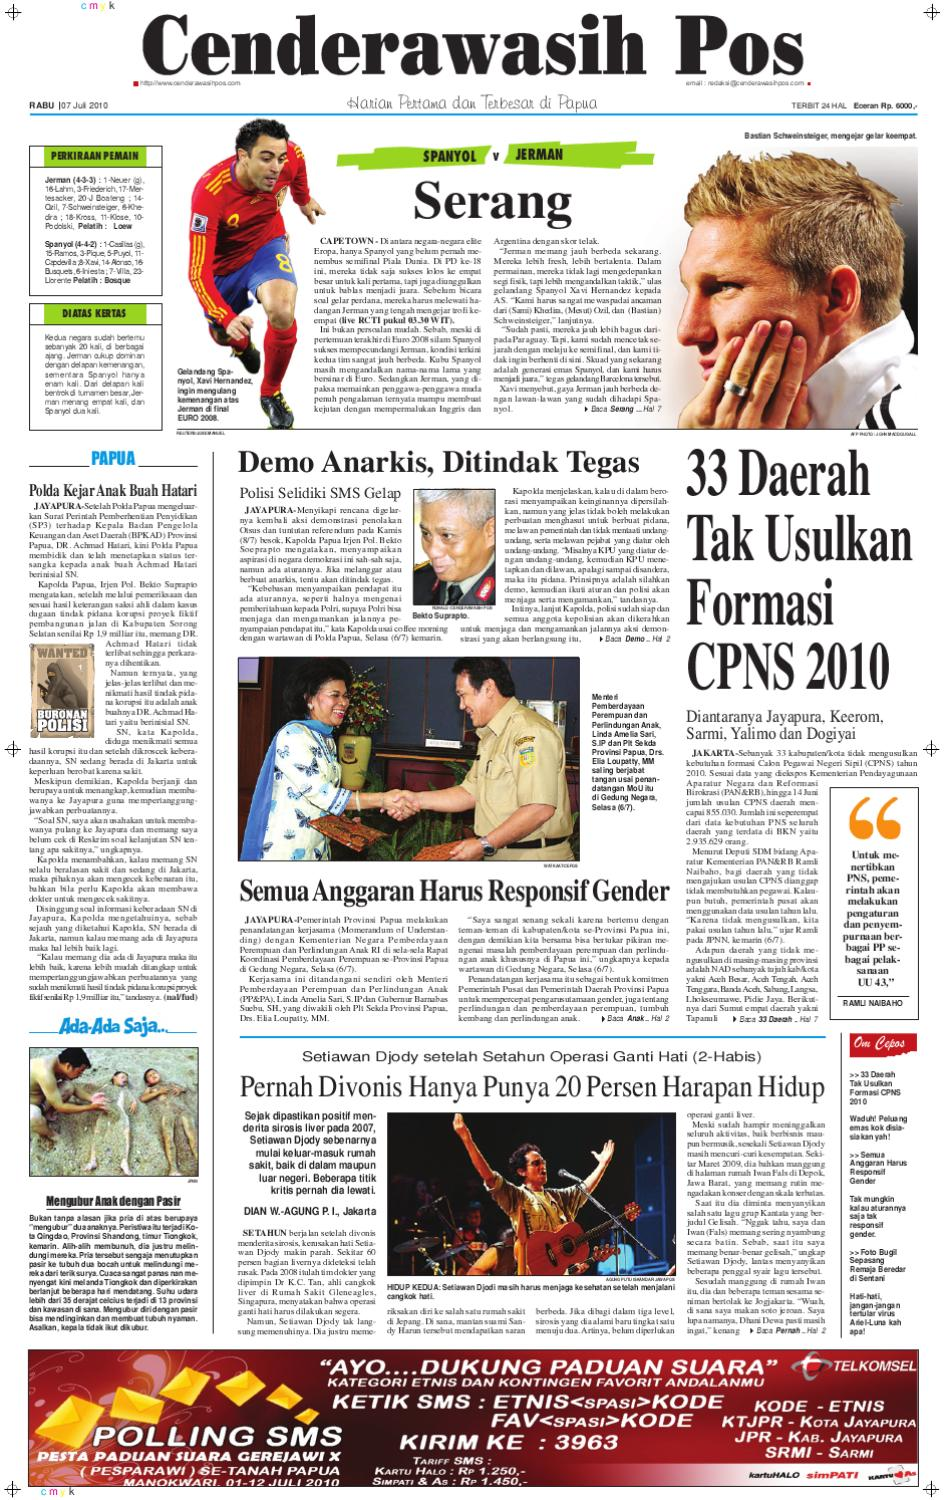 epaper-cenderawasihpos by xpresi cepos - issuu 89a0553713